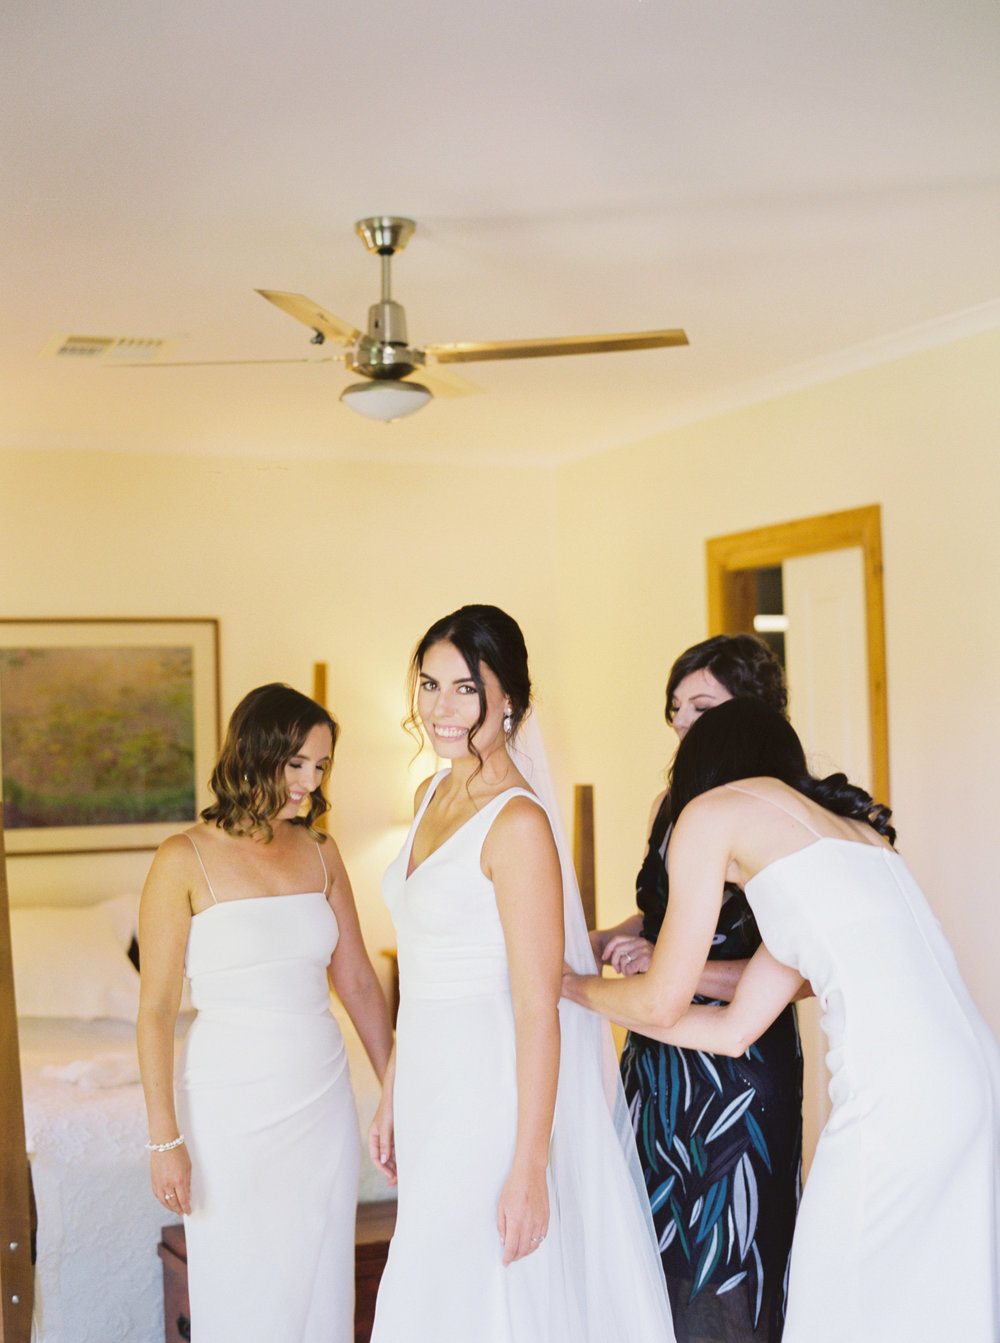 00014- Olive Tree Mediterranean Wedding in Mudgee NSW Australia Fine Art Film Wedding Lifestyle Photographer Sheri McMahon_.jpg